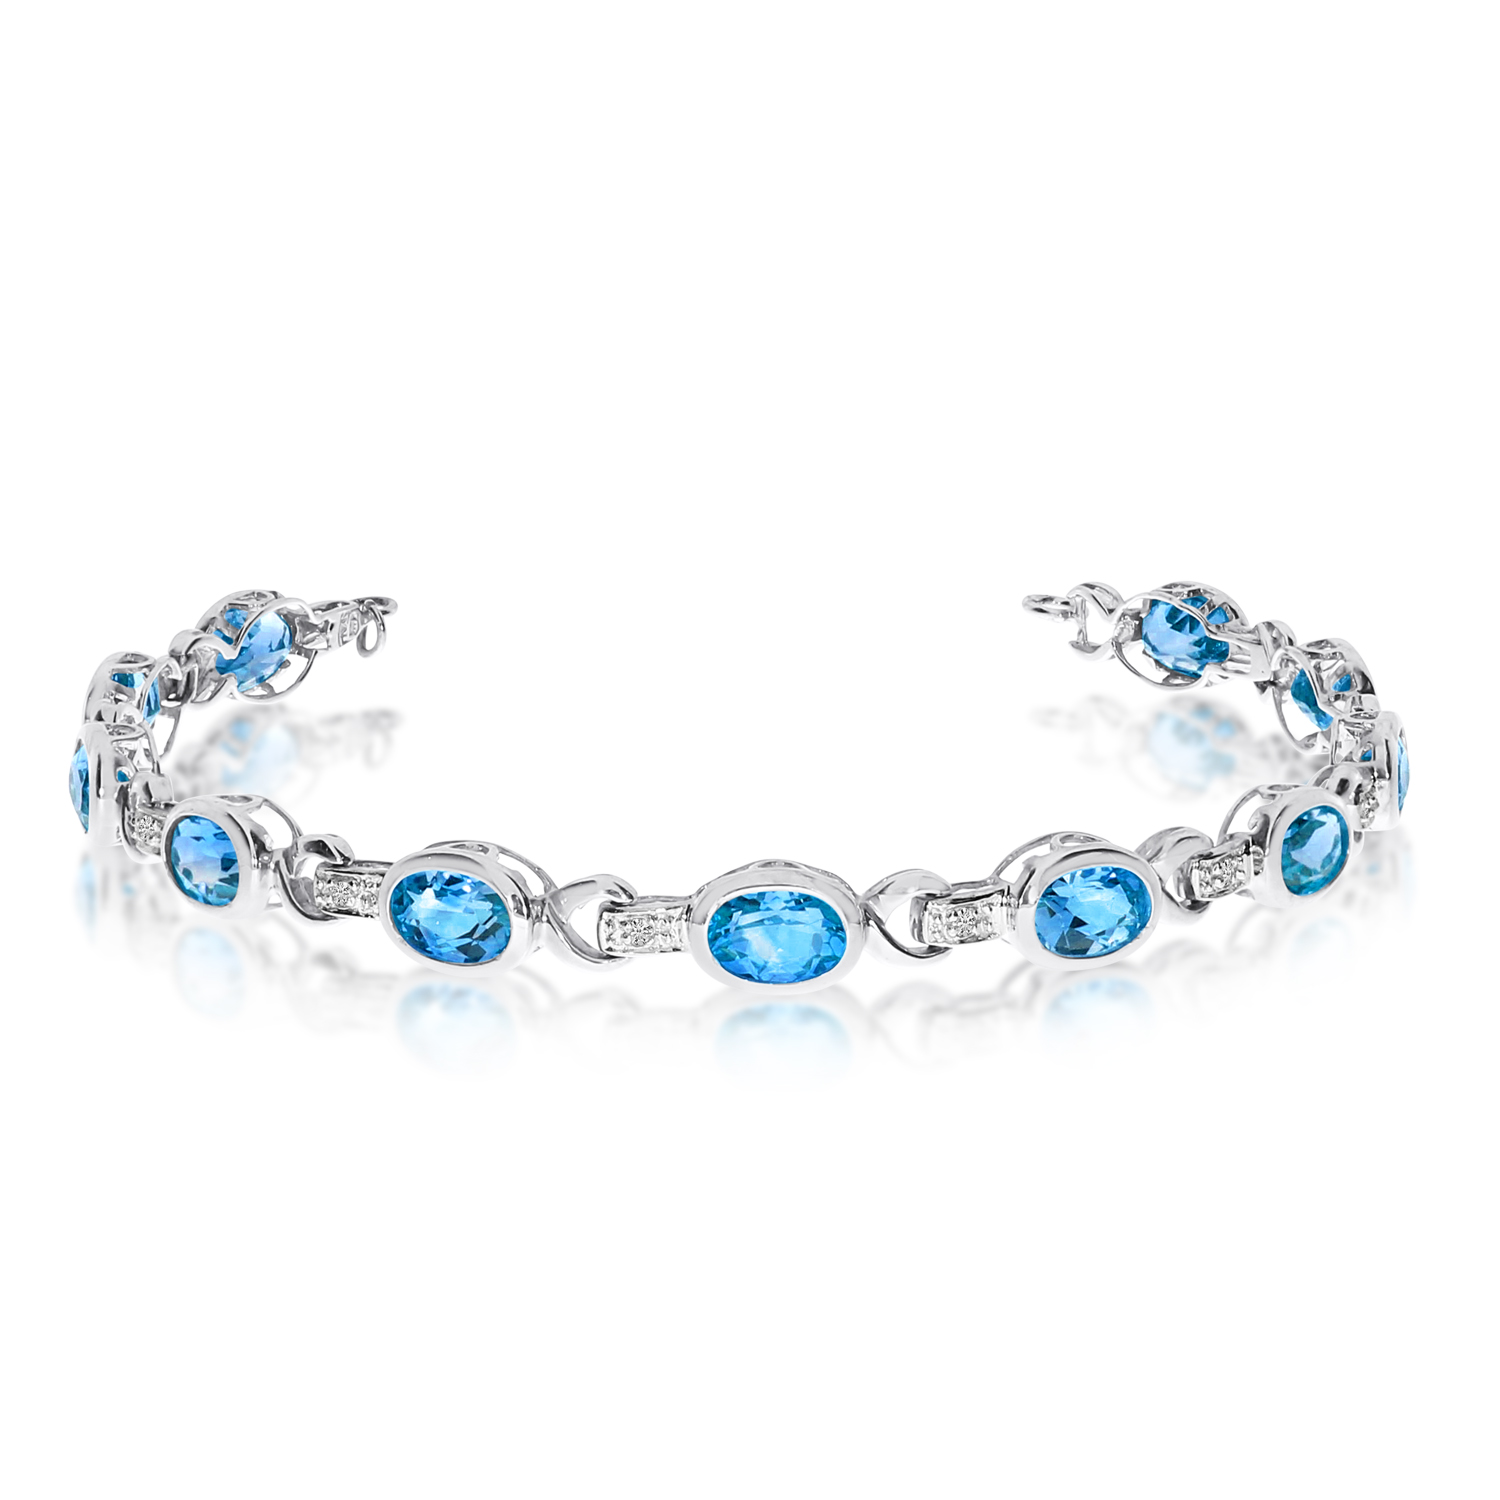 Oval Blue Topaz & Diamond Link Bracelet 14k White Gold (9.62ctw)